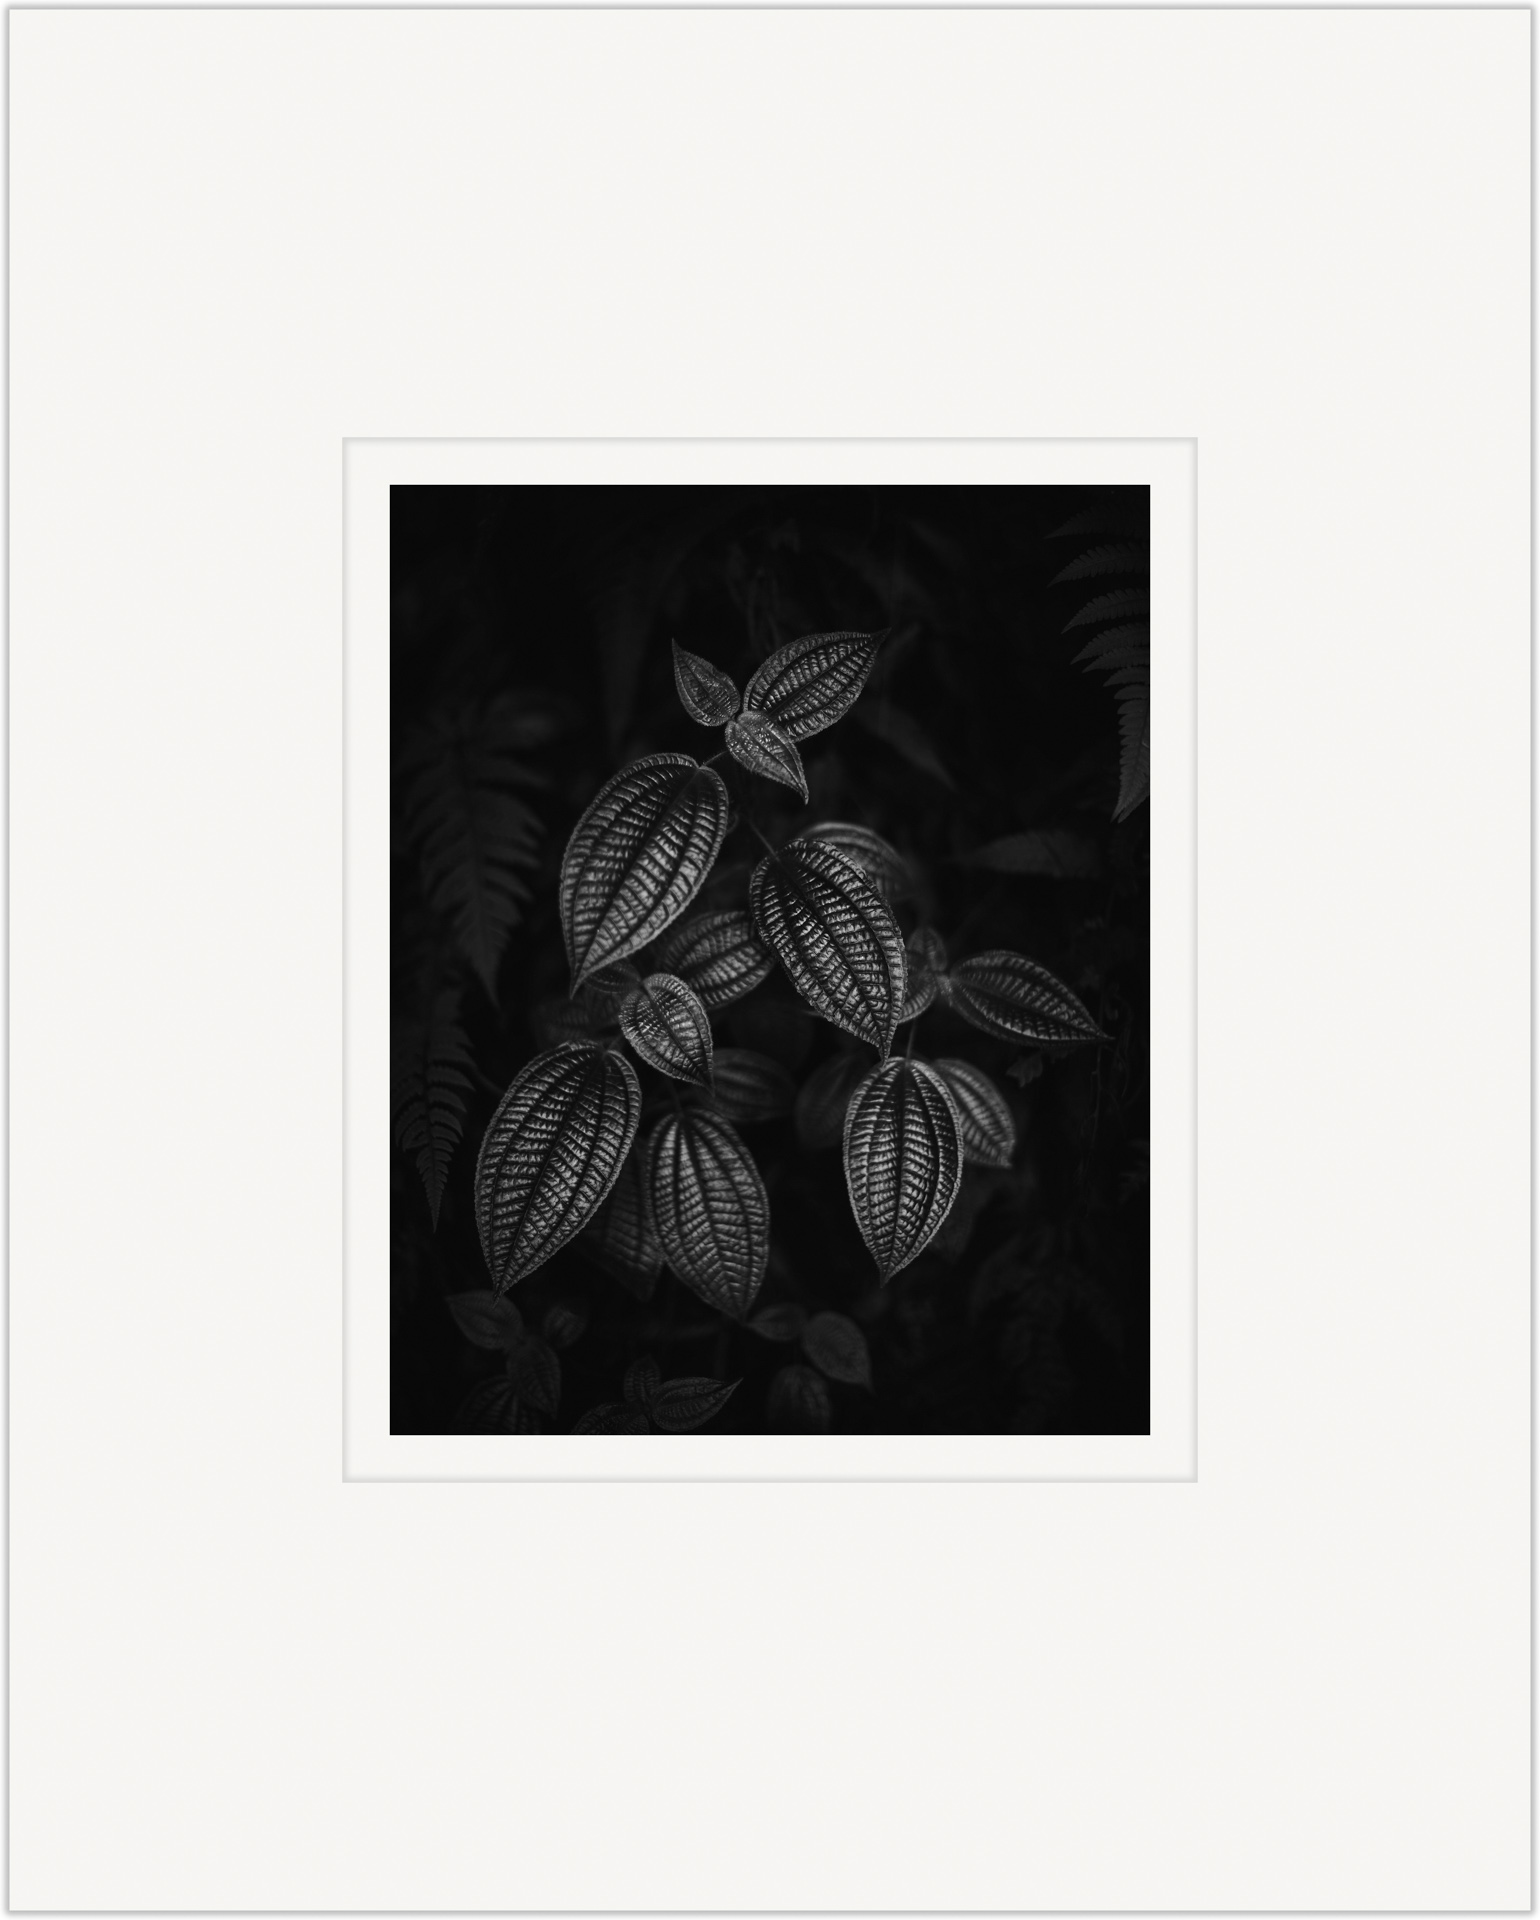 Foliis Candentis   20cm x 25cm Photo Paper Limited Edition of 99   IDR 799,000